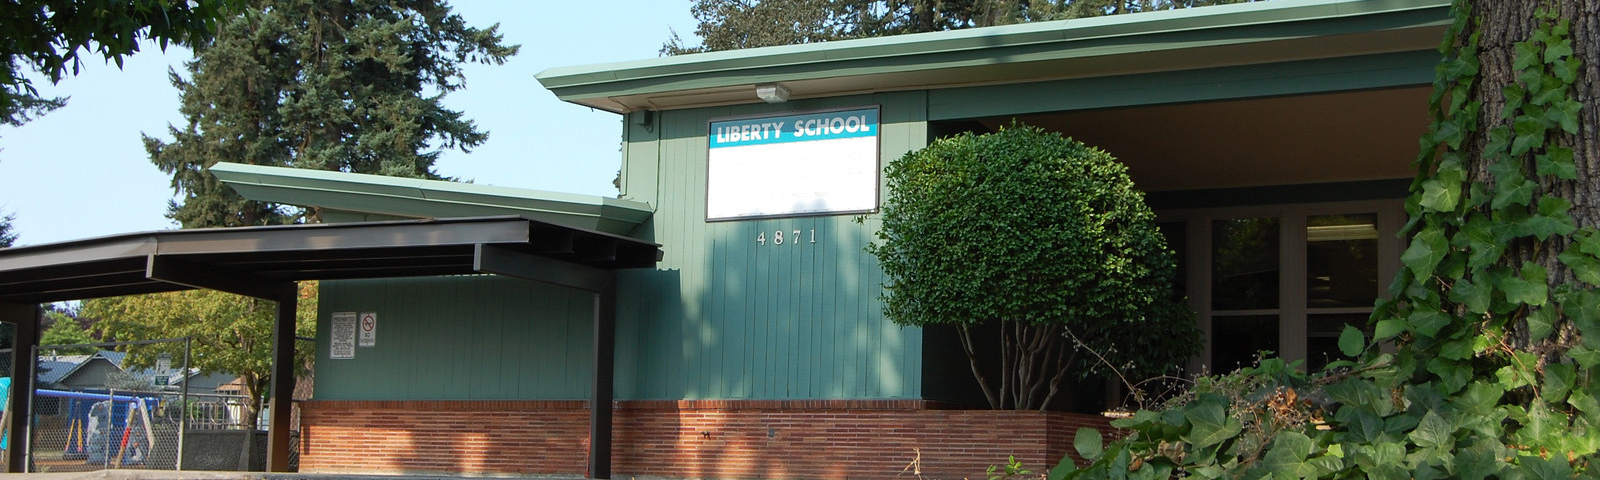 Liberty Elementary front exterior